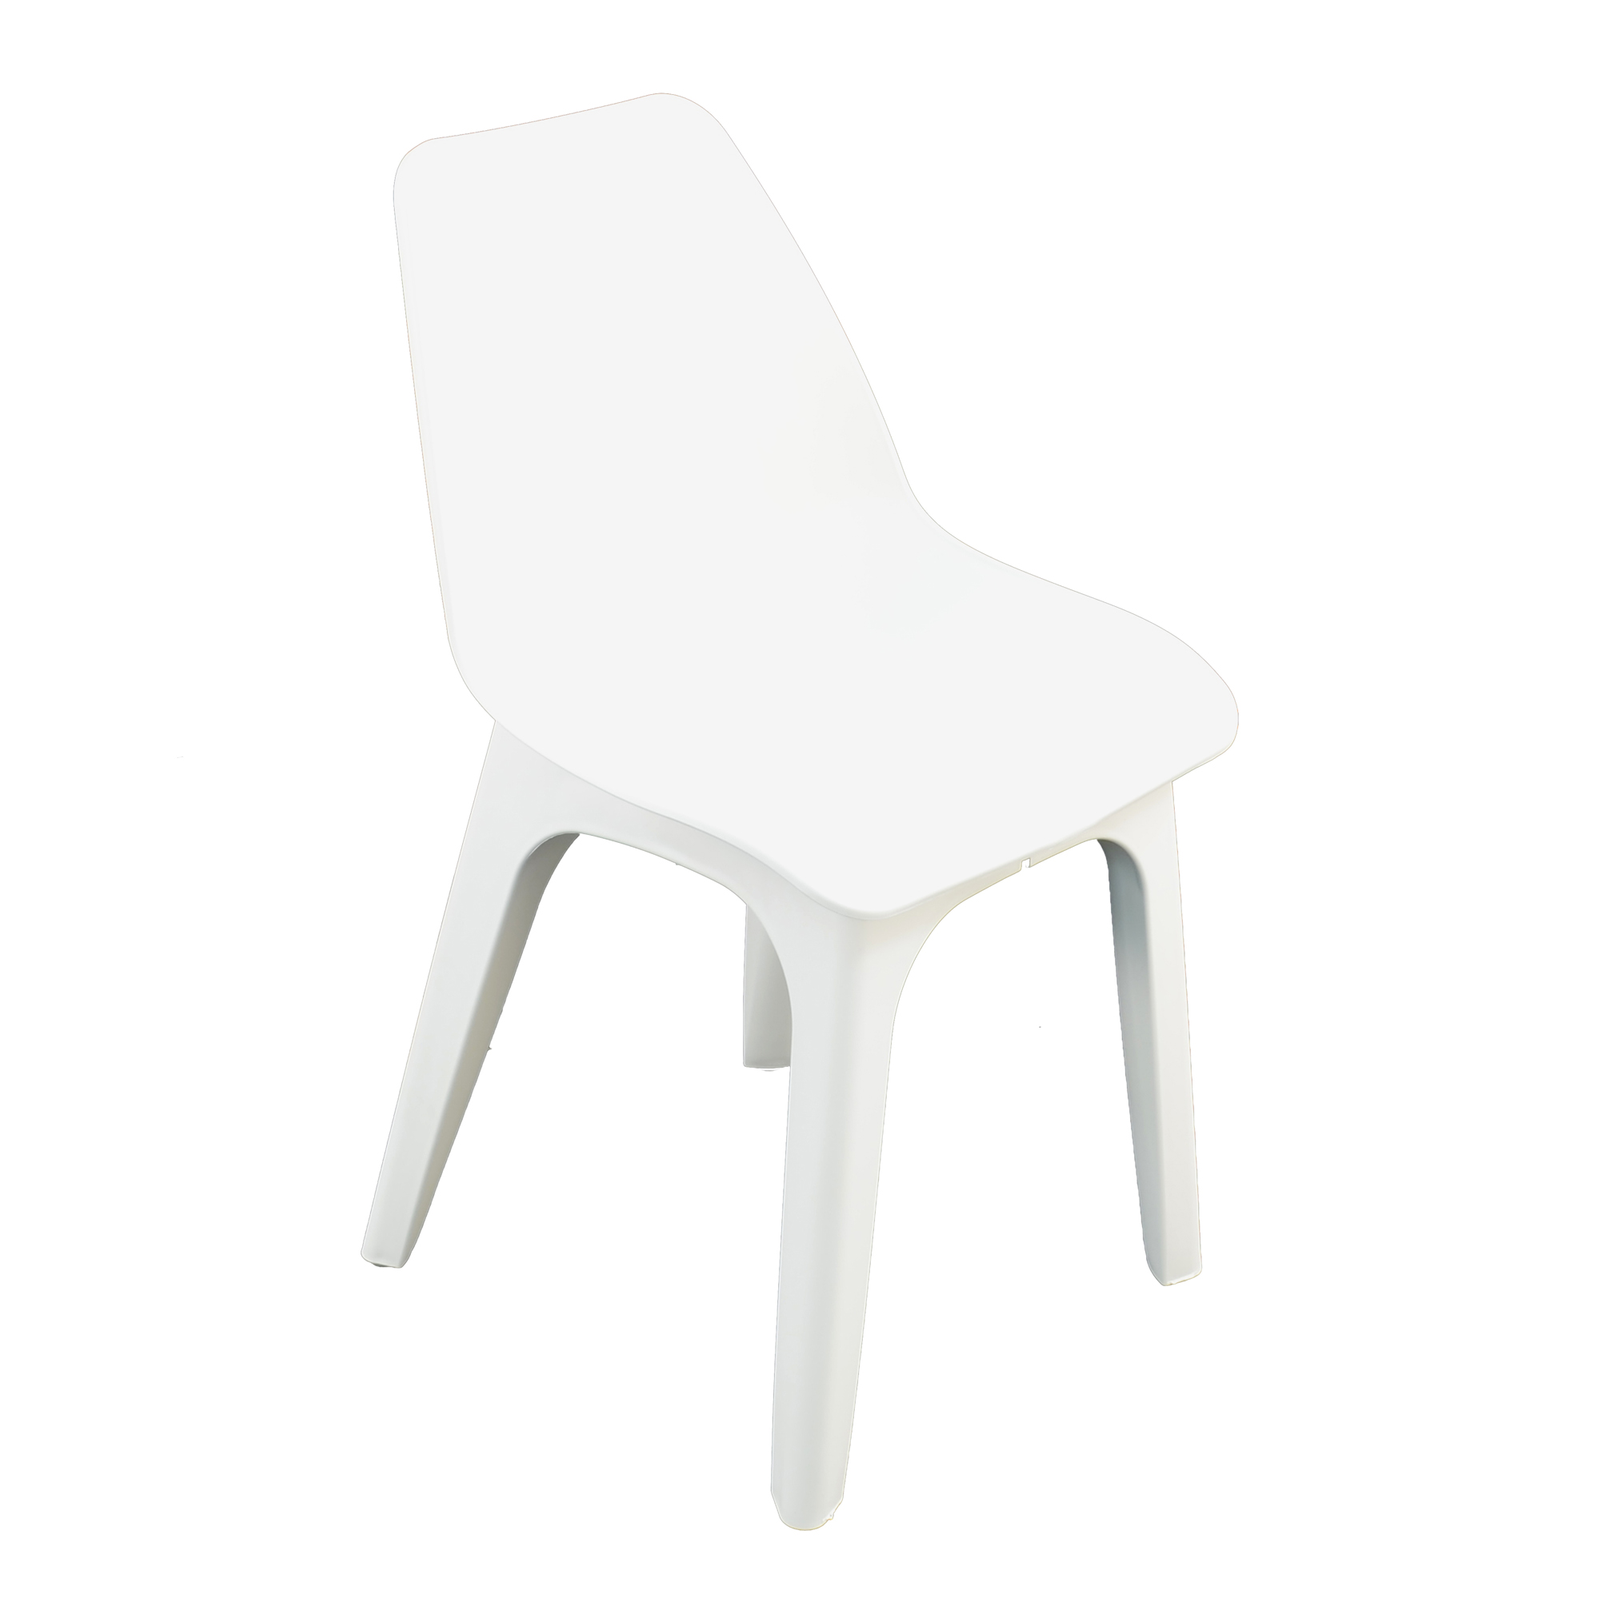 Trabella White Ponente Dining Table With 4 Eolo Chairs